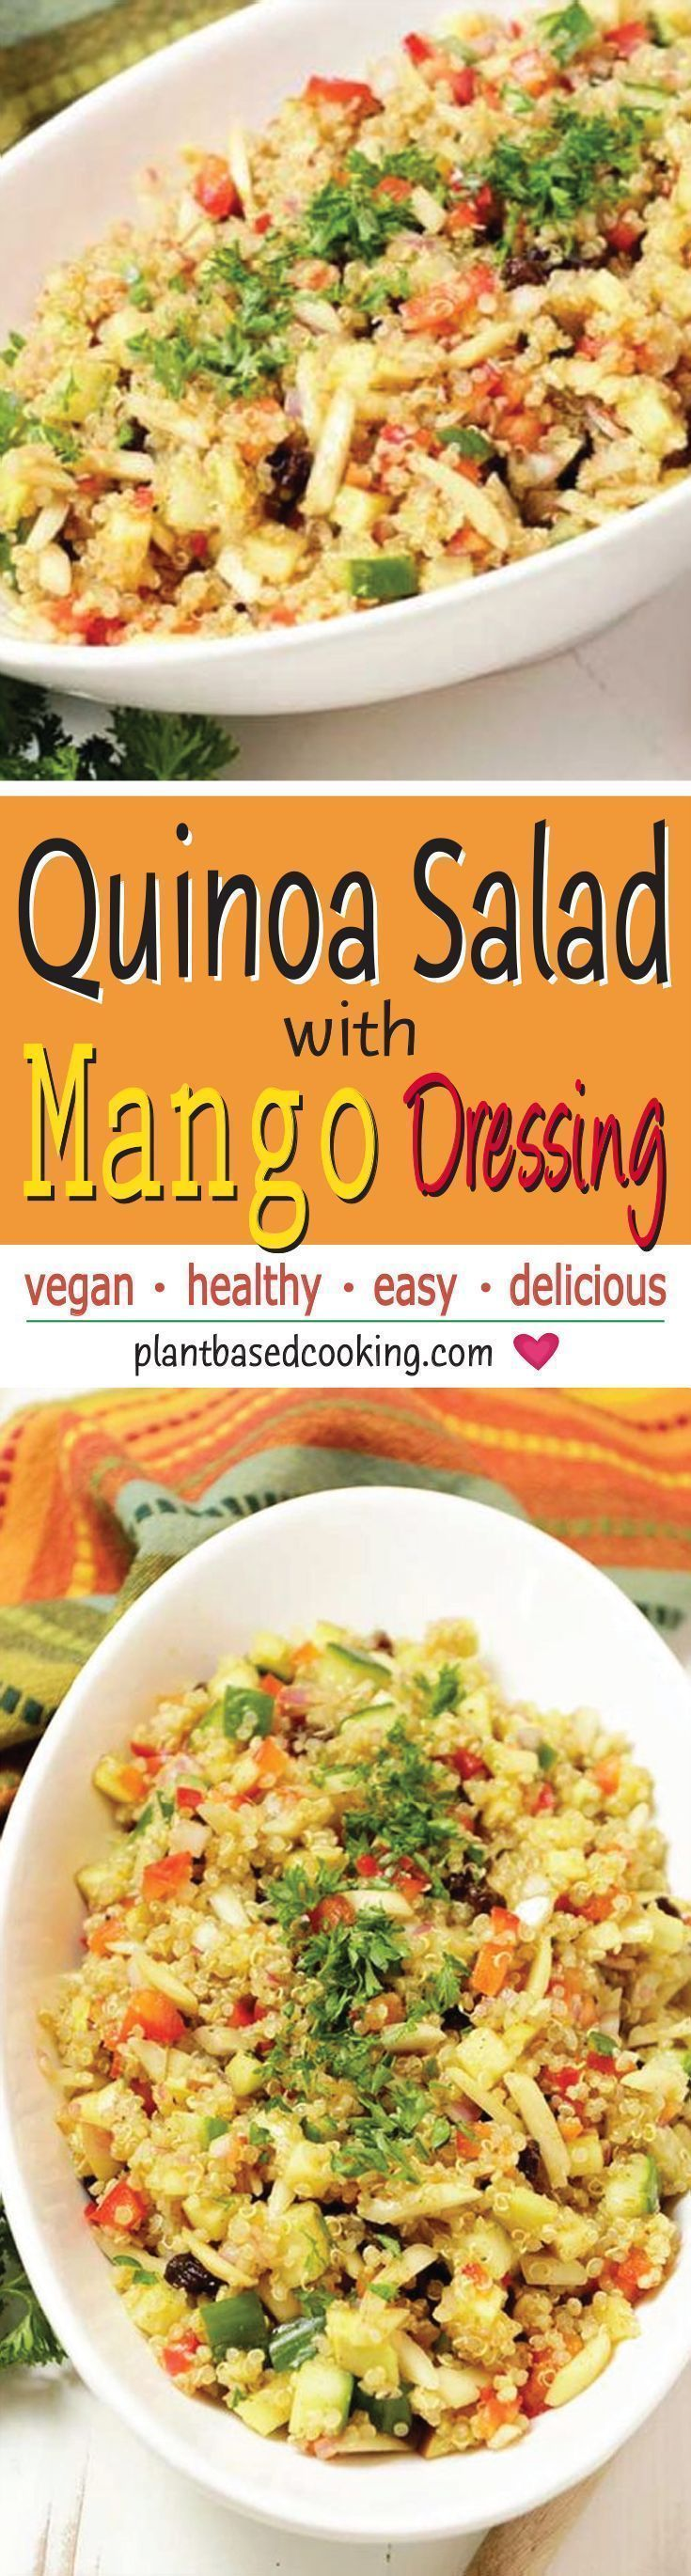 Quinoa Salad With Mango Dressing